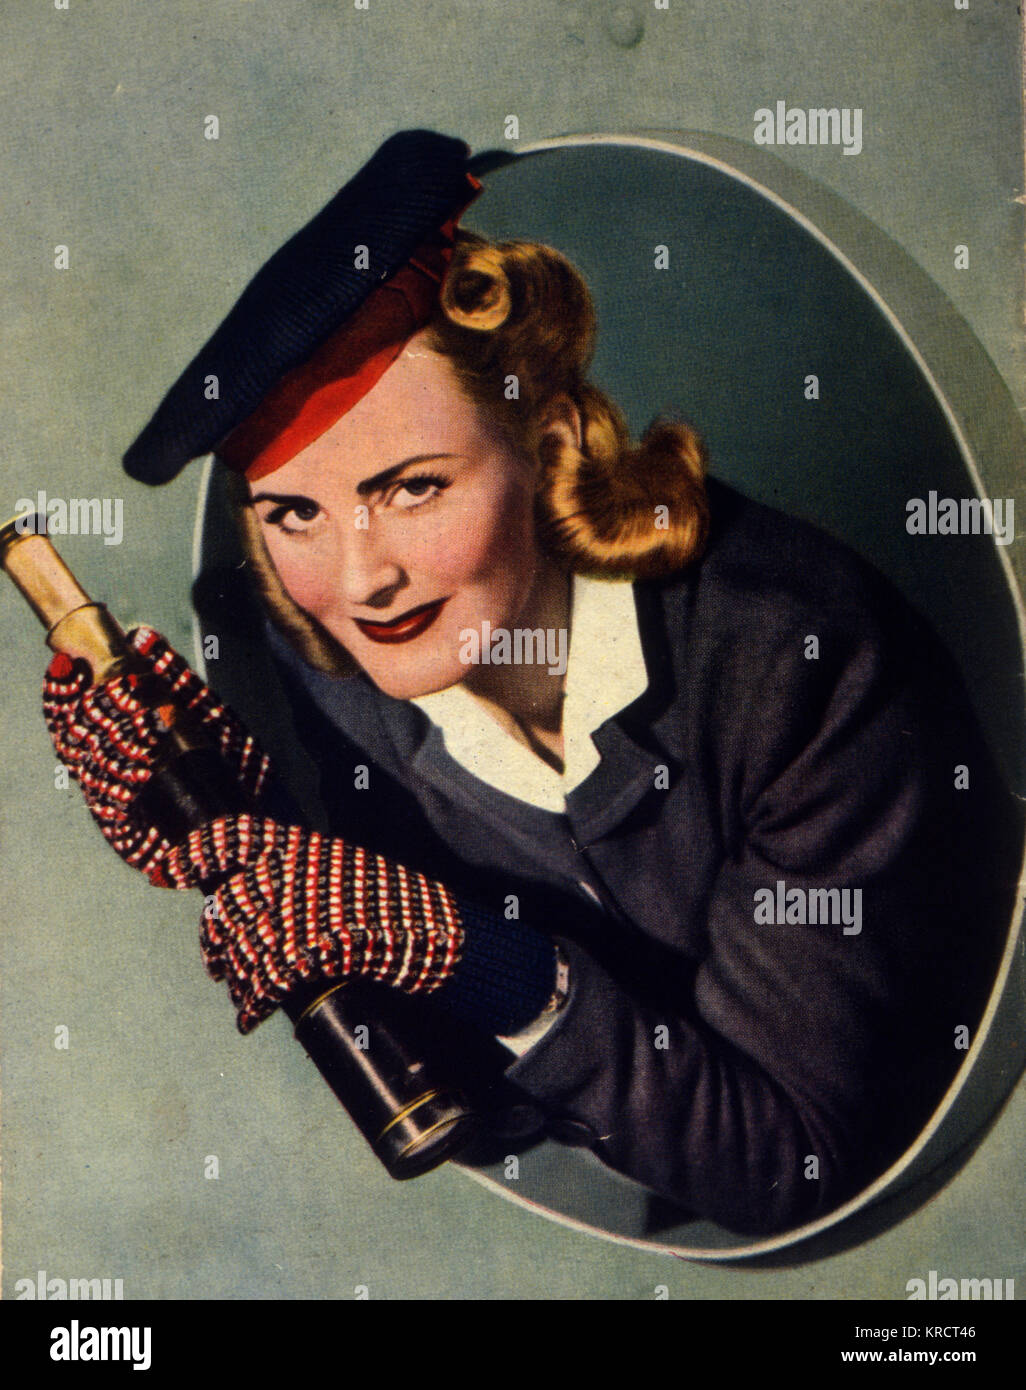 All the nice girls love a sailor especially this young woman whose decided to crochet herself a cap to let everyone - Stock Image